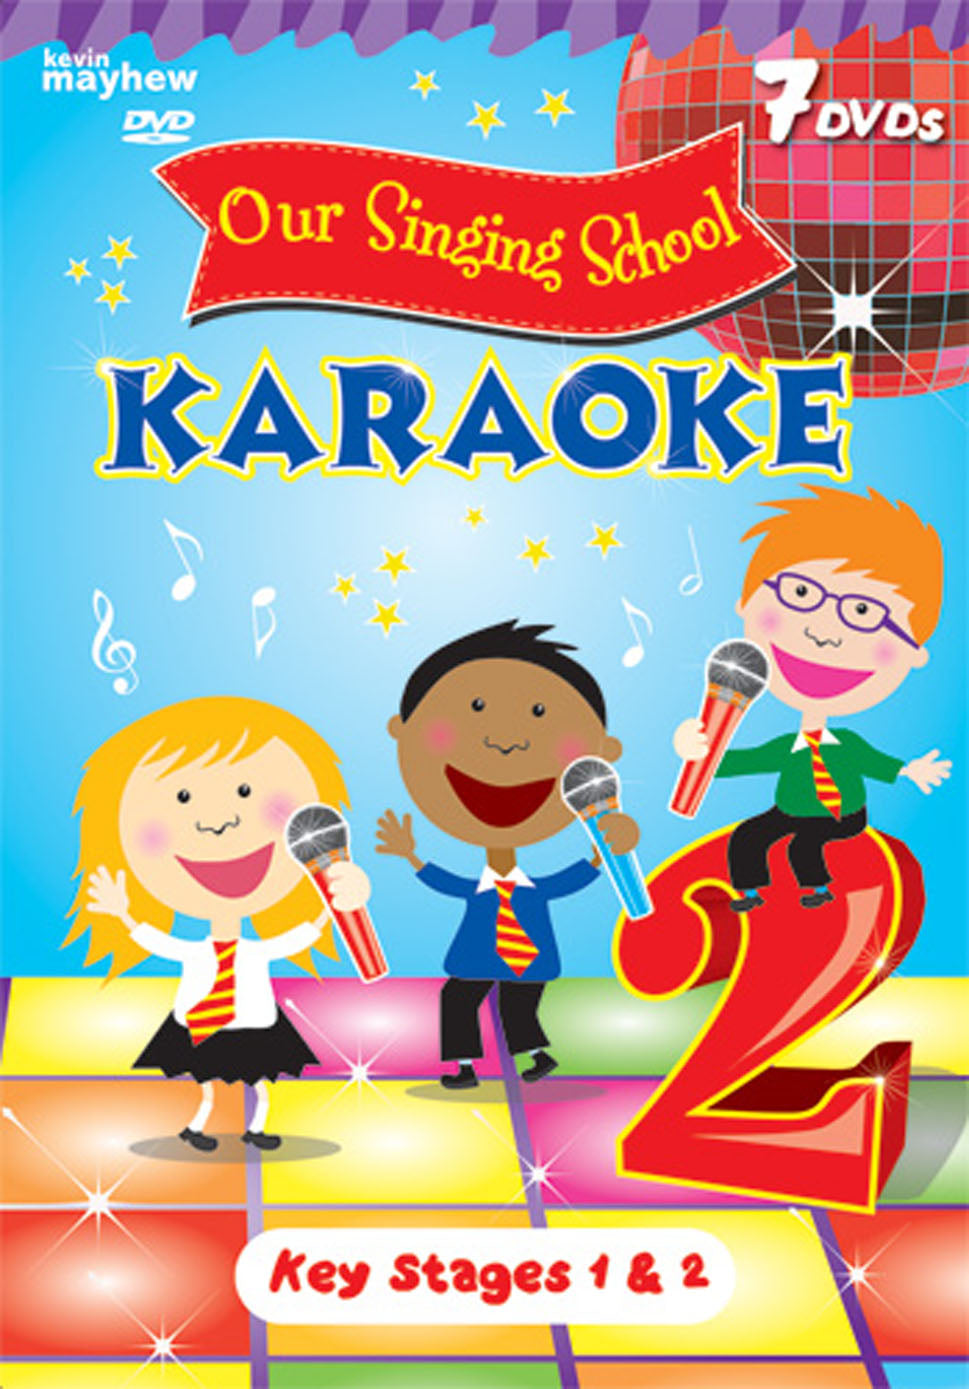 Our Singing School - Karaoke 2Our Singing School - Karaoke 2